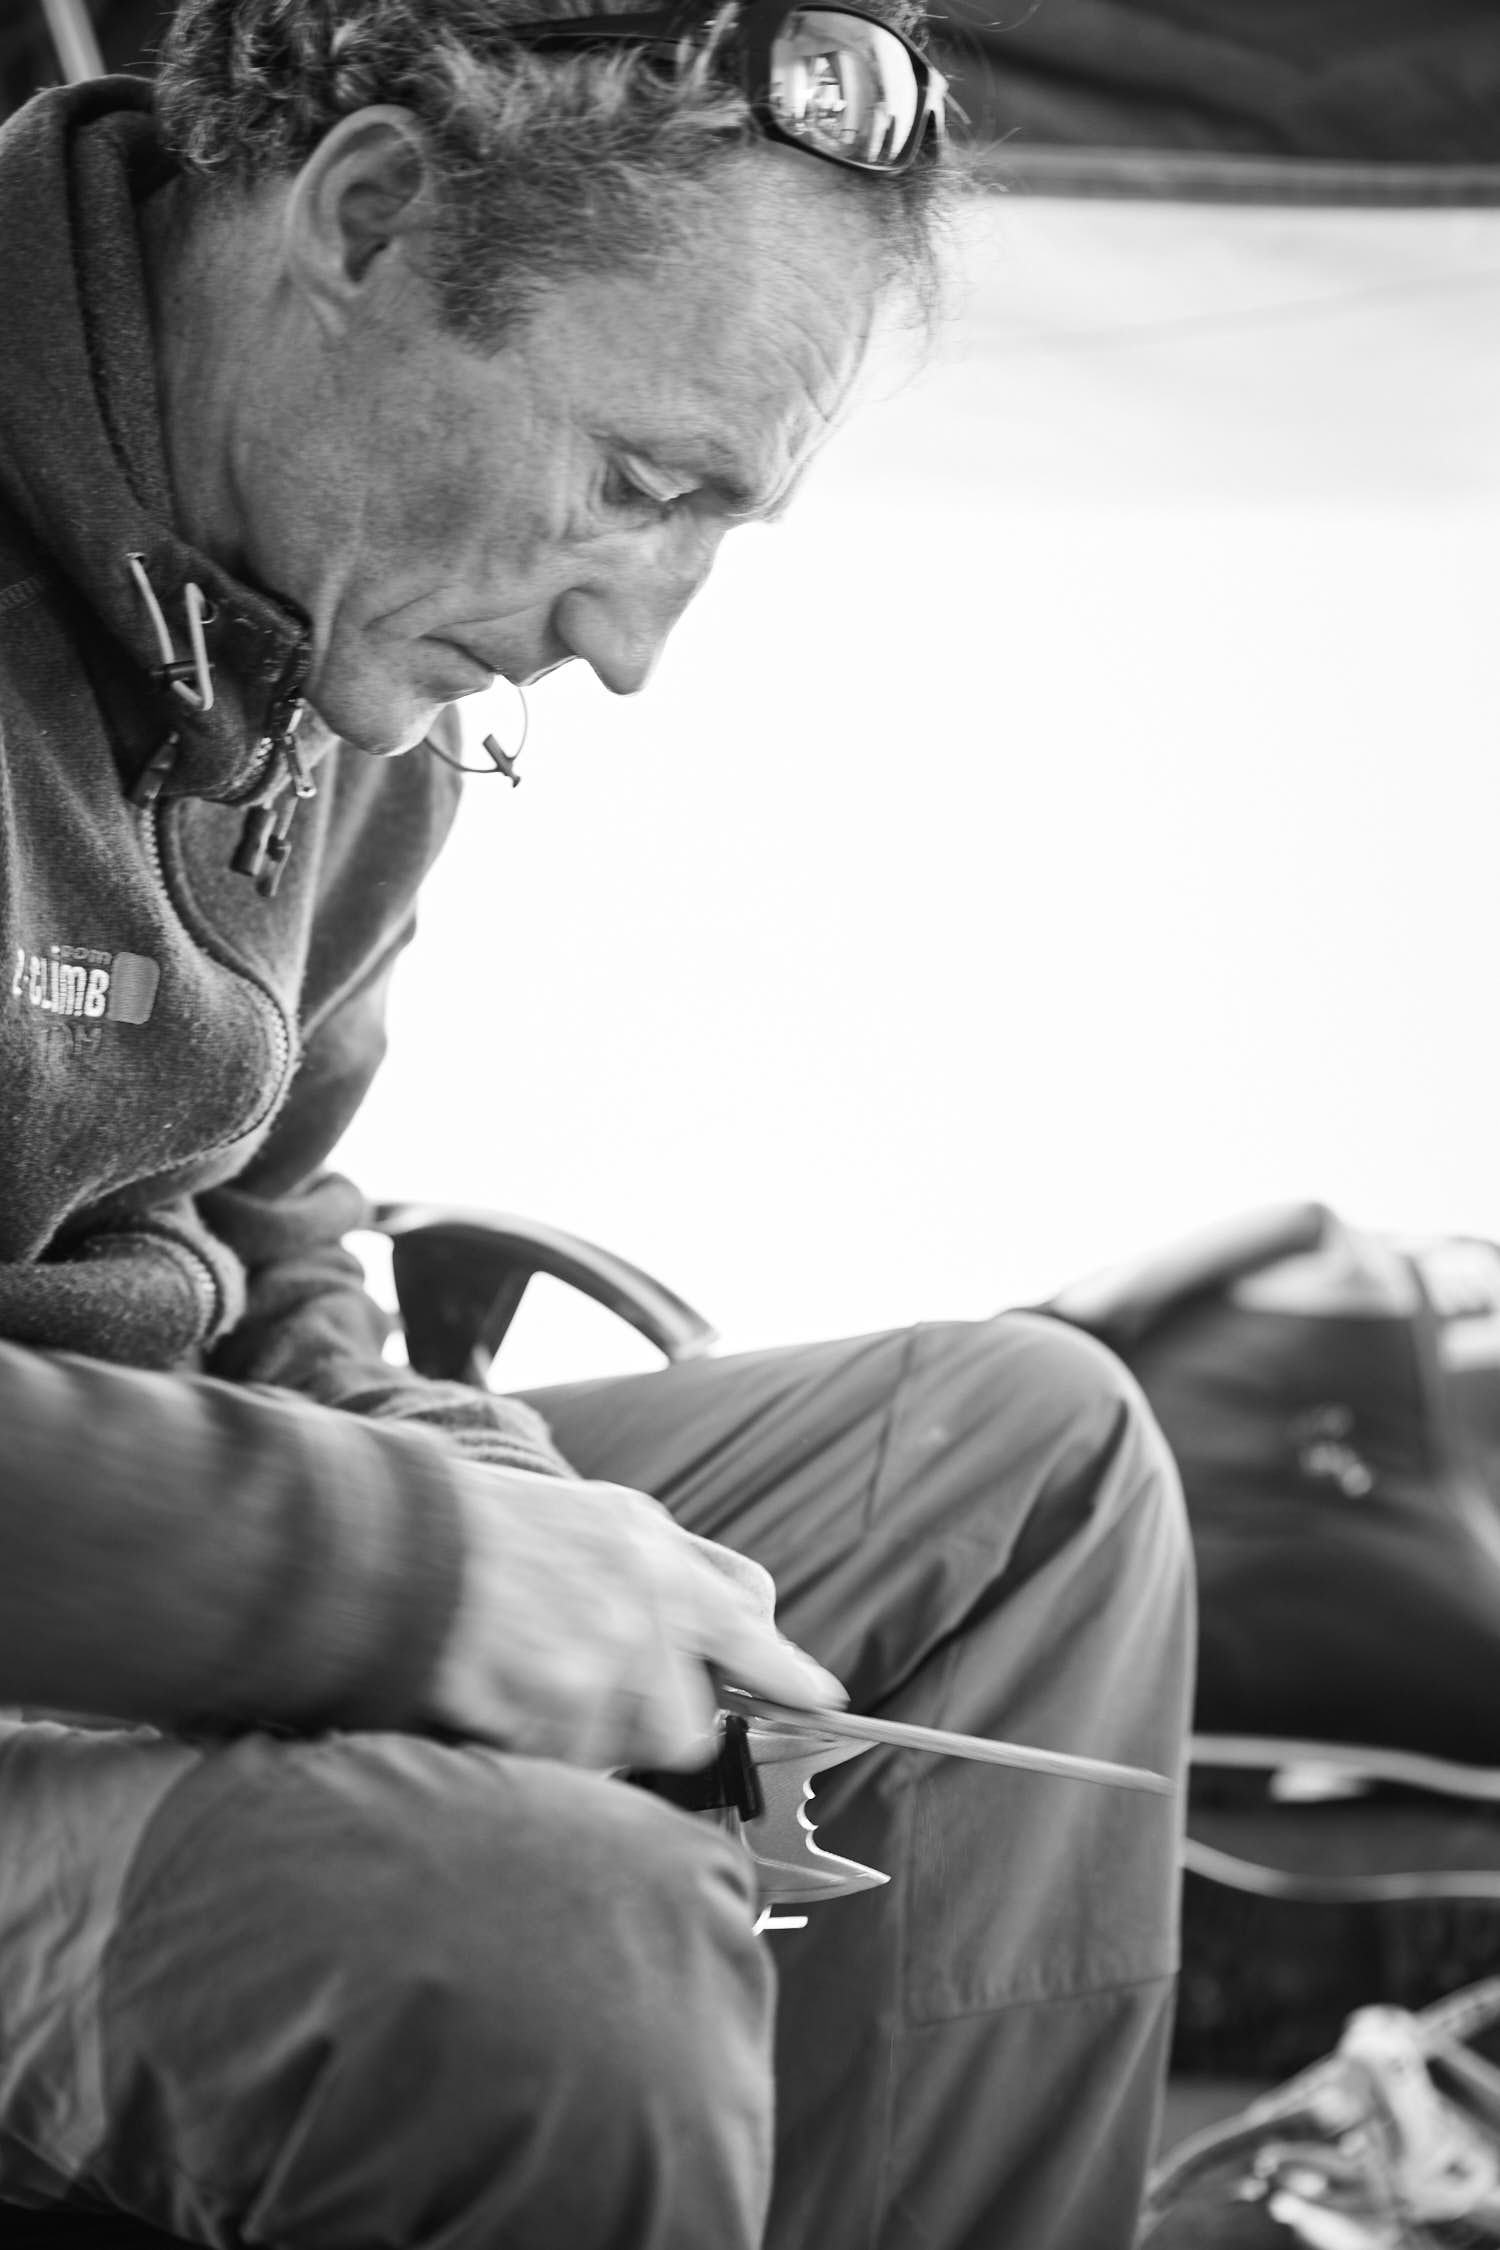 Portrait of a man sharpening a crampon. Black and white photography.